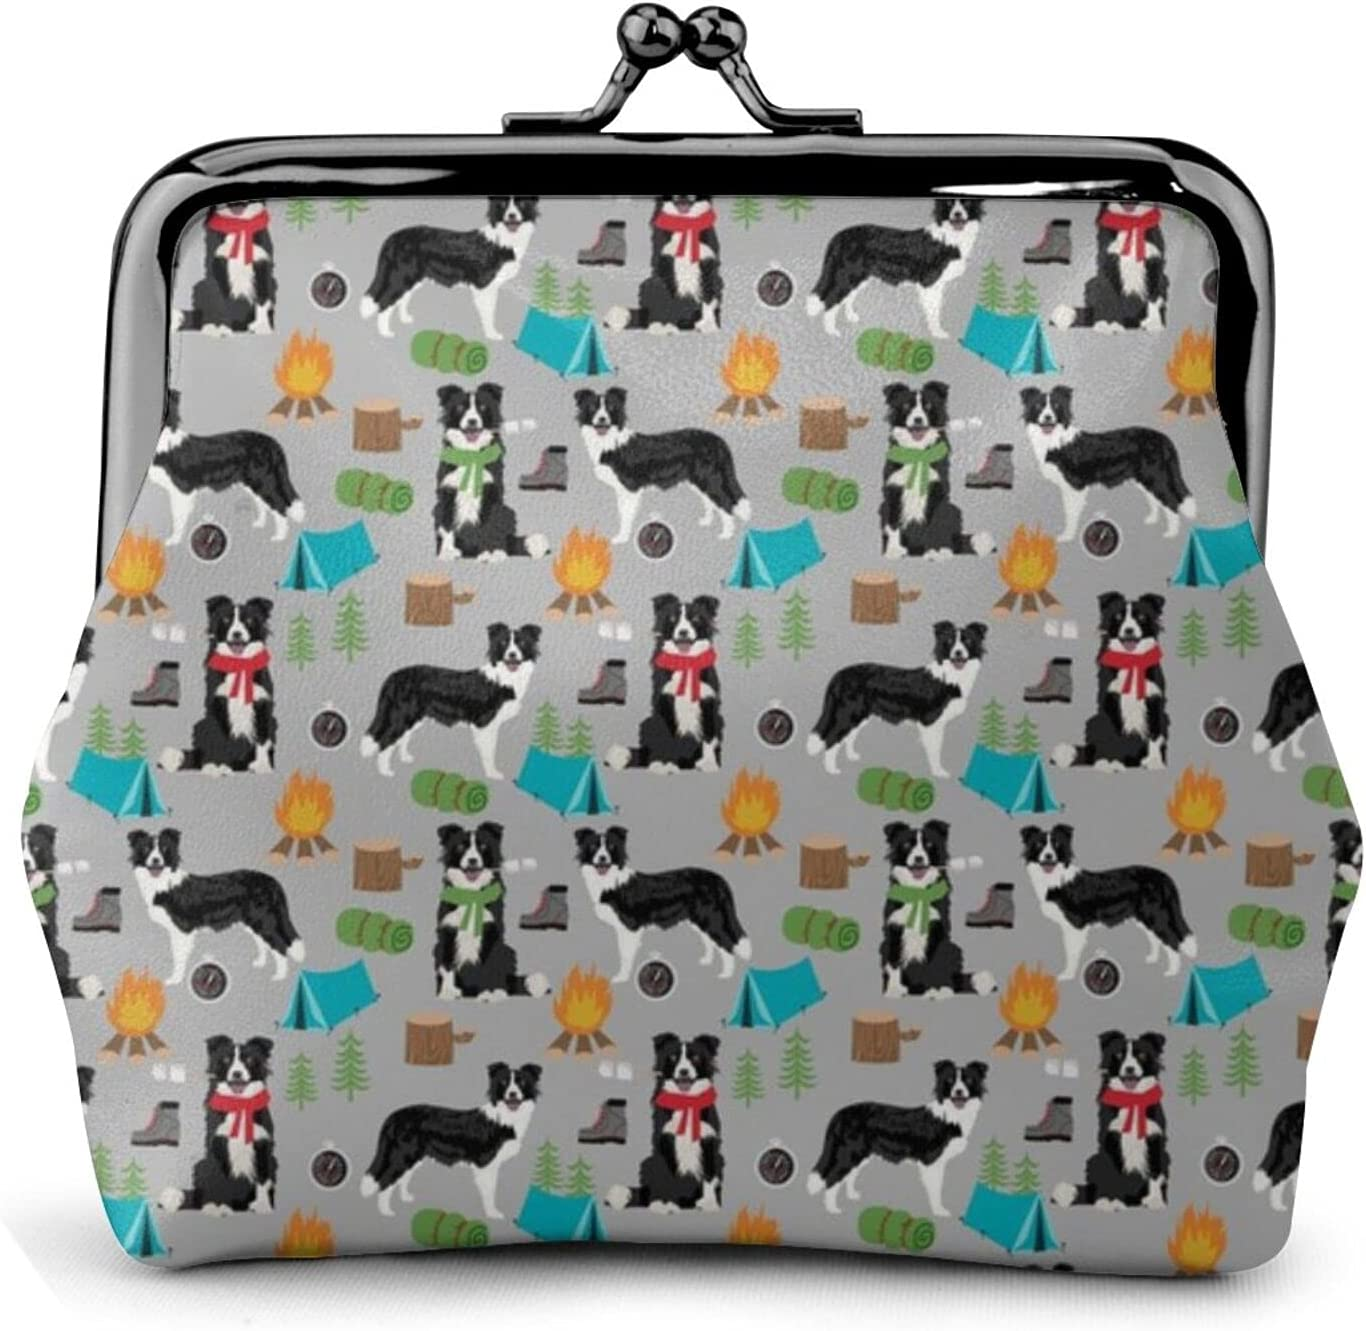 Border Collie Camping 712 Coin Purse Retro Money Pouch with Kiss-lock Buckle Small Wallet for Women and Girls